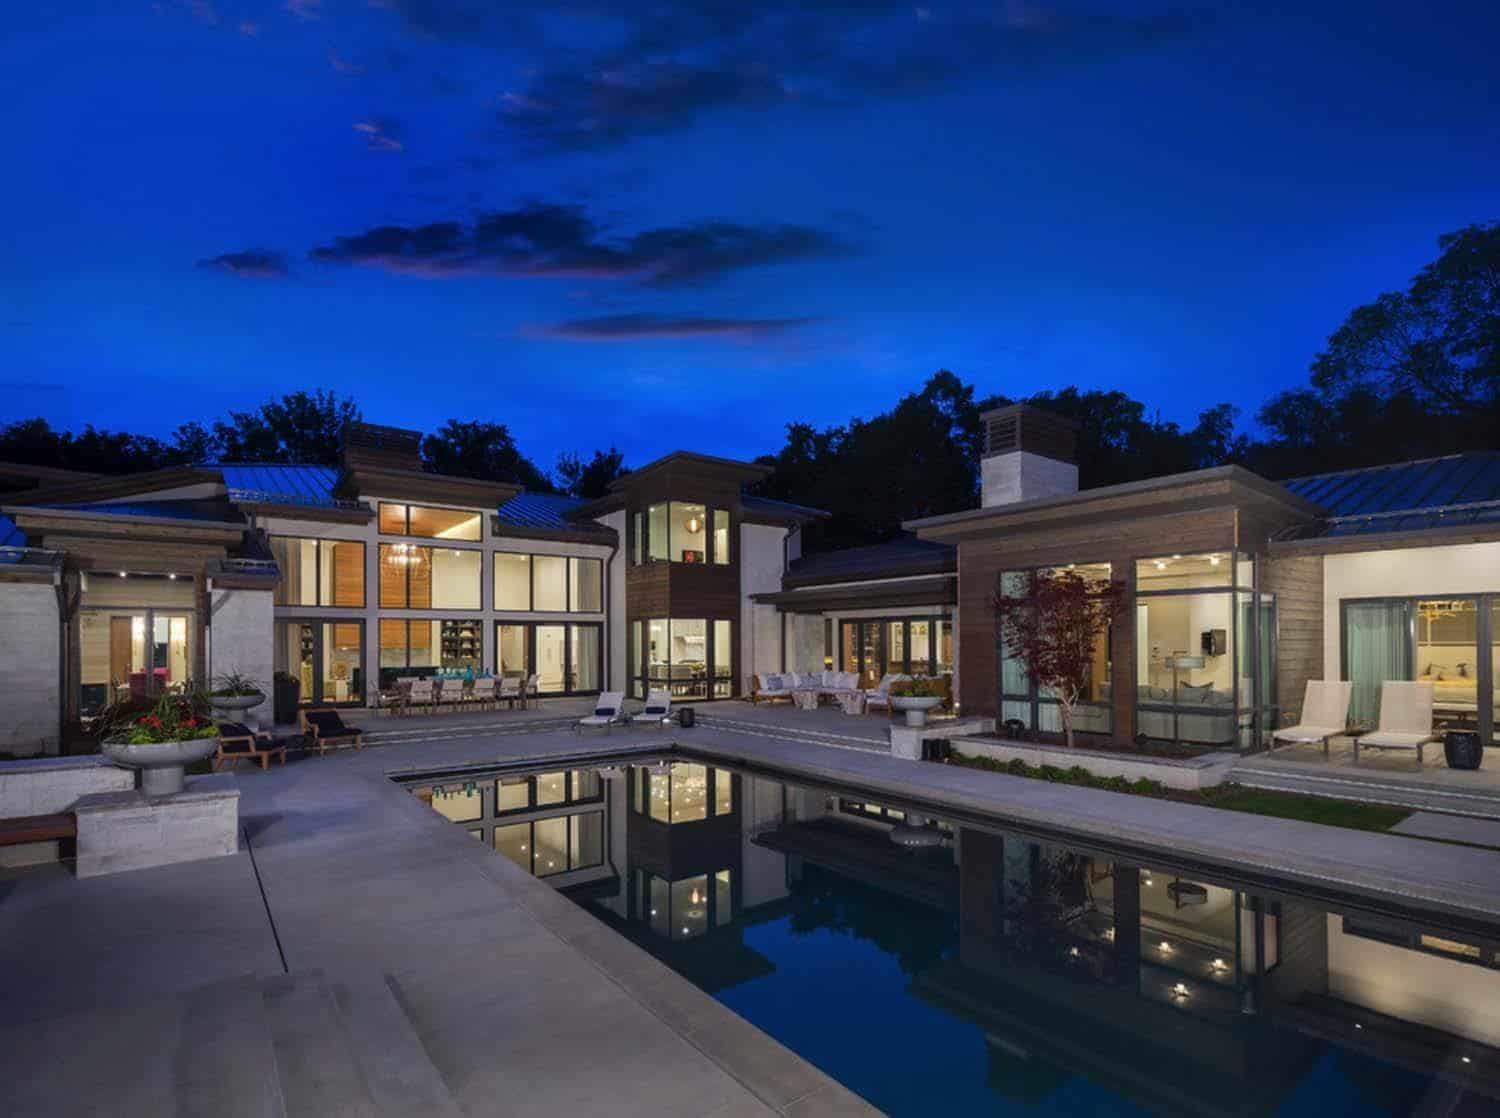 3 Bedroom Apartments Salt Lake City Modern Residence In Utah Showcases Exquisite Design Features